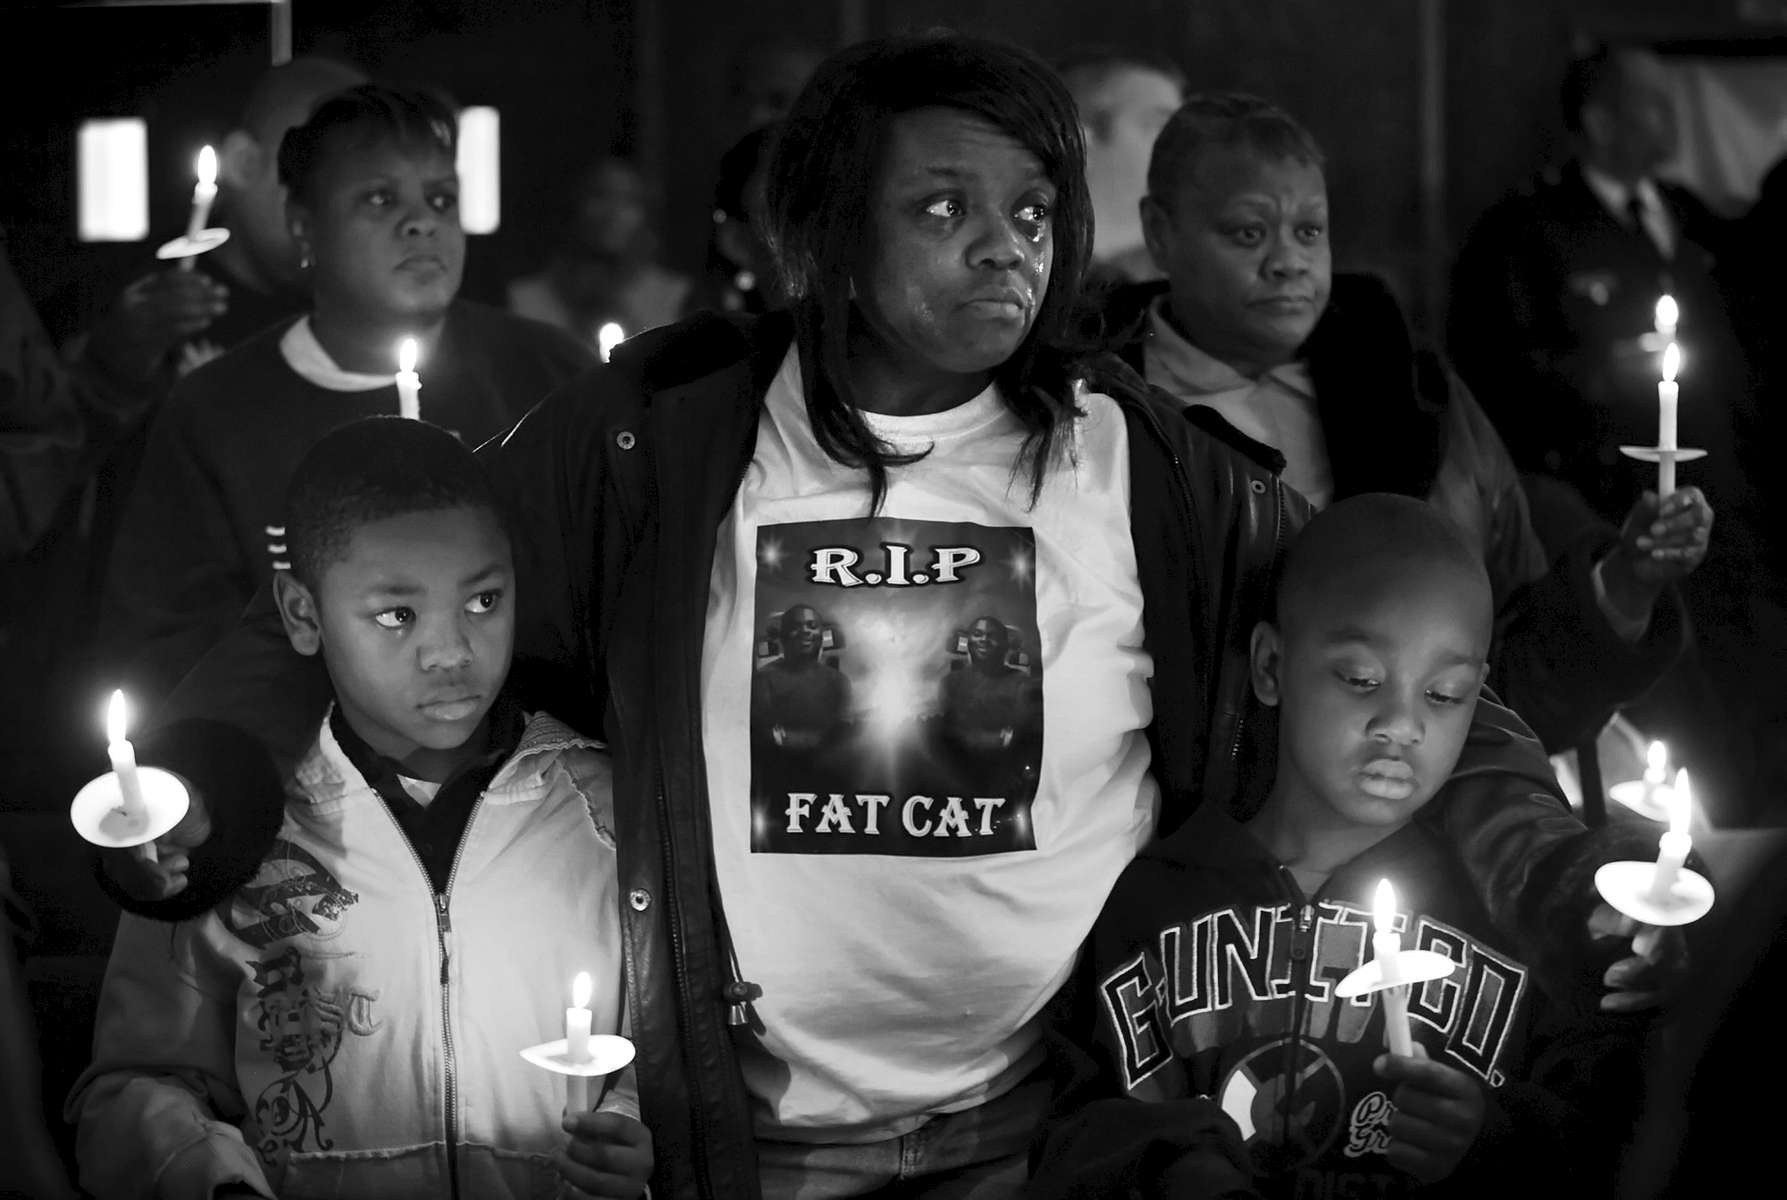 Thursday December 31, 2009--Byron Blassingame Jr., left, and Darrion Bassingame Jr., right, are comforted by their grandmother Jacqueline Heard, center, as the names of the 145 murder victims from the city of St. Louis are read aloud during the 18th Annual Families Advocating Safe Streets candle light service to remember 2009's murder victims at El Bethel Church of God in Christ on Thursday in St. Louis.  Heard's son Byron Blassingame Sr. was shot and killed along with two other men in the same SUV as they were waiting at stop light near Union Station on May 8, 2009.  Byron Jr. was Byron Blassingame Sr.'s son and Darrion Blassingame Jr. was his nephew.David Carson     dcarson@post-dispatch.com